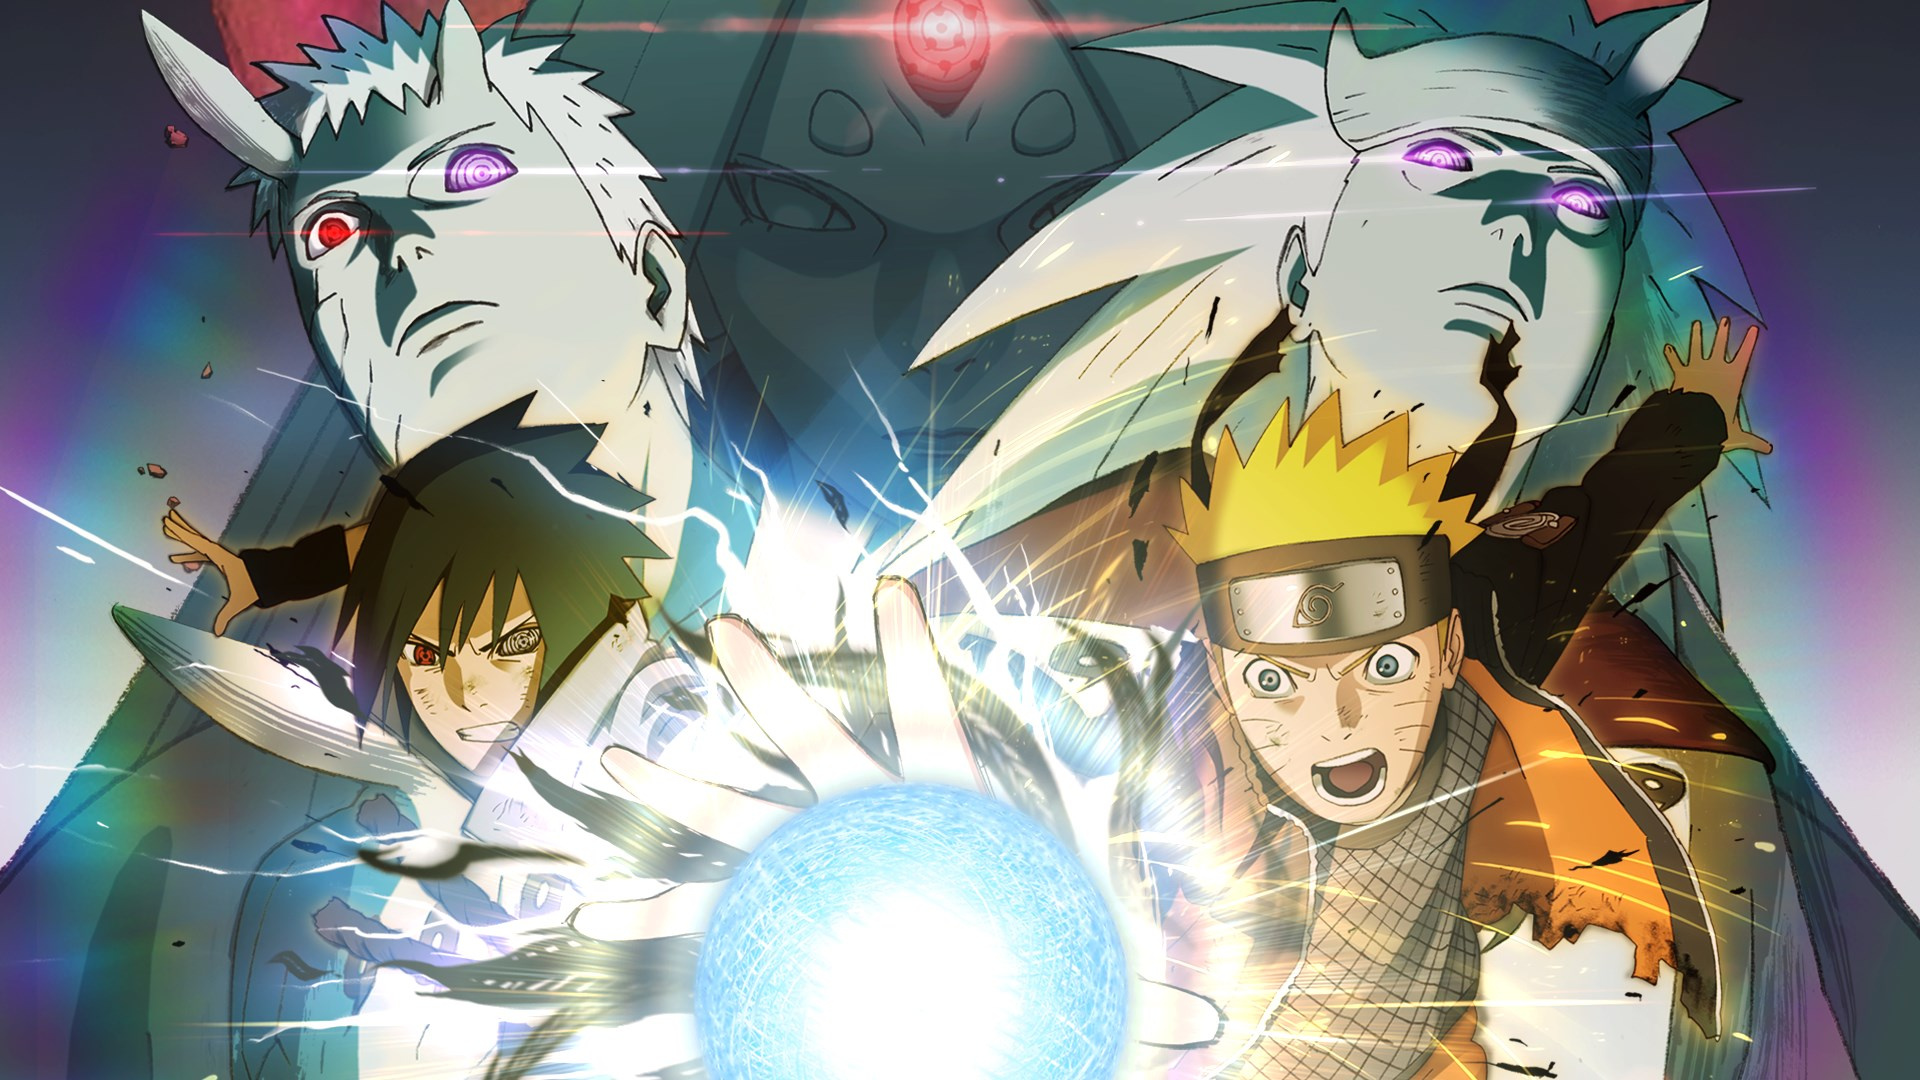 Naruto Ultimate Ninja Storm 5 Isn't Happening Says Dev, But Can't Comment on a New Boruto Game